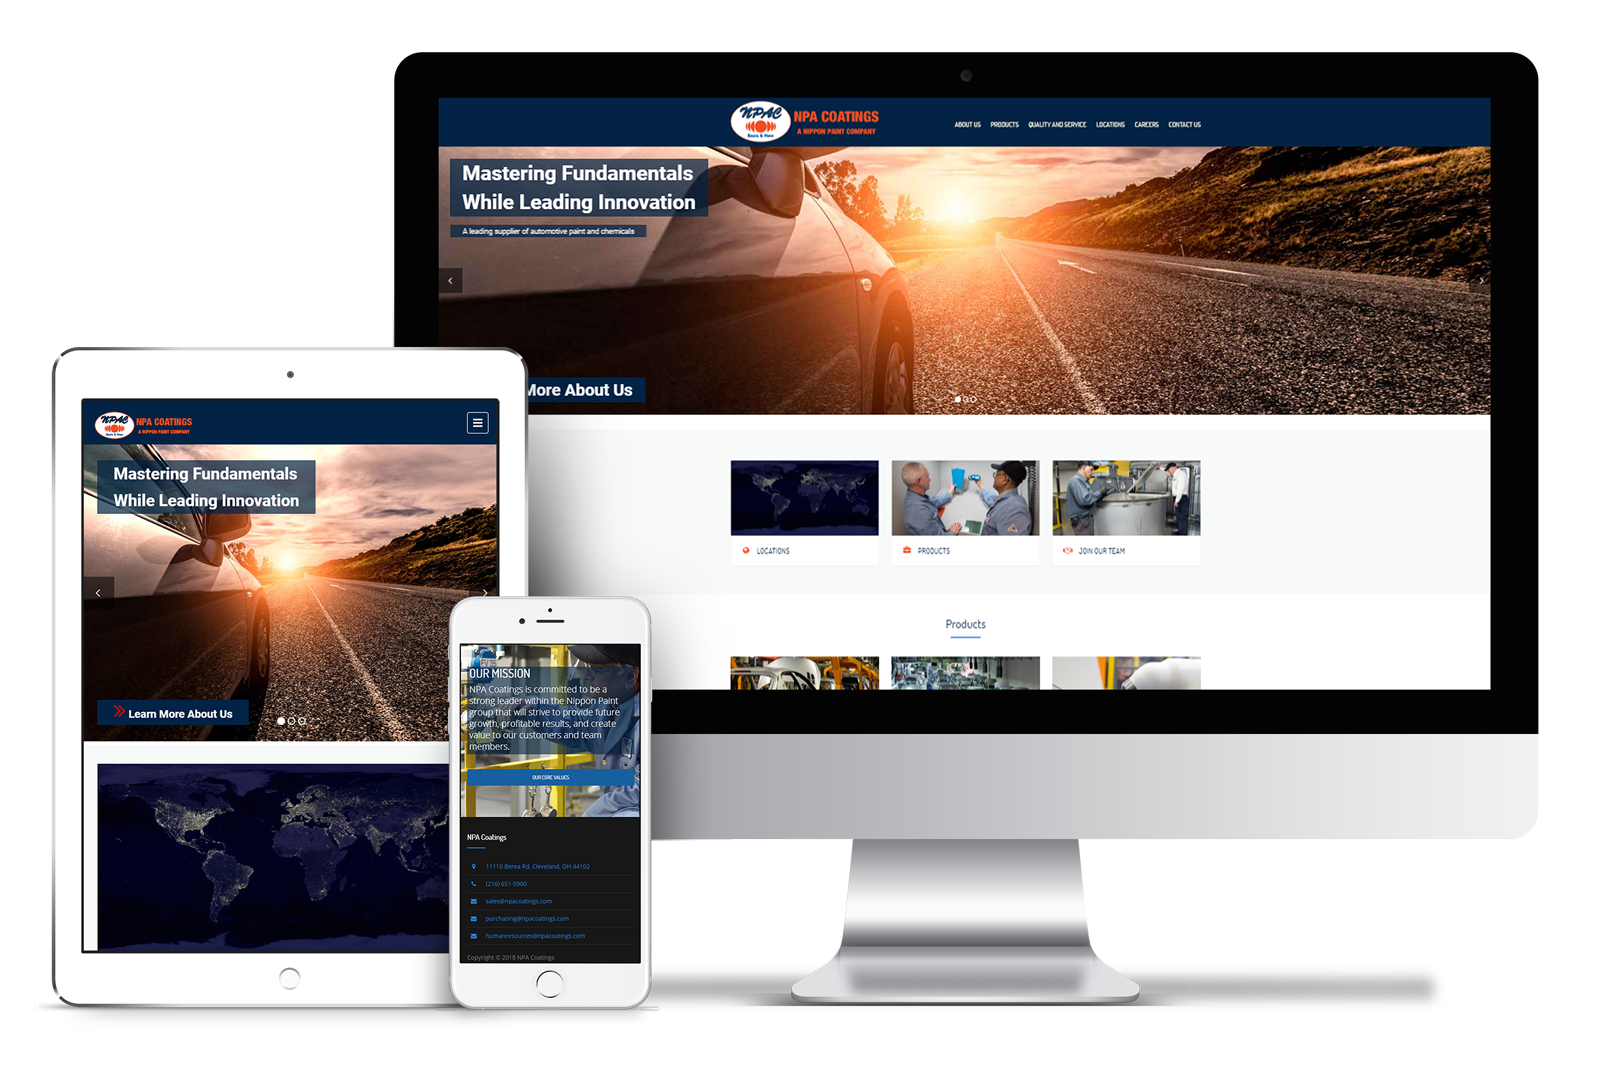 NPA Coatings website mockup